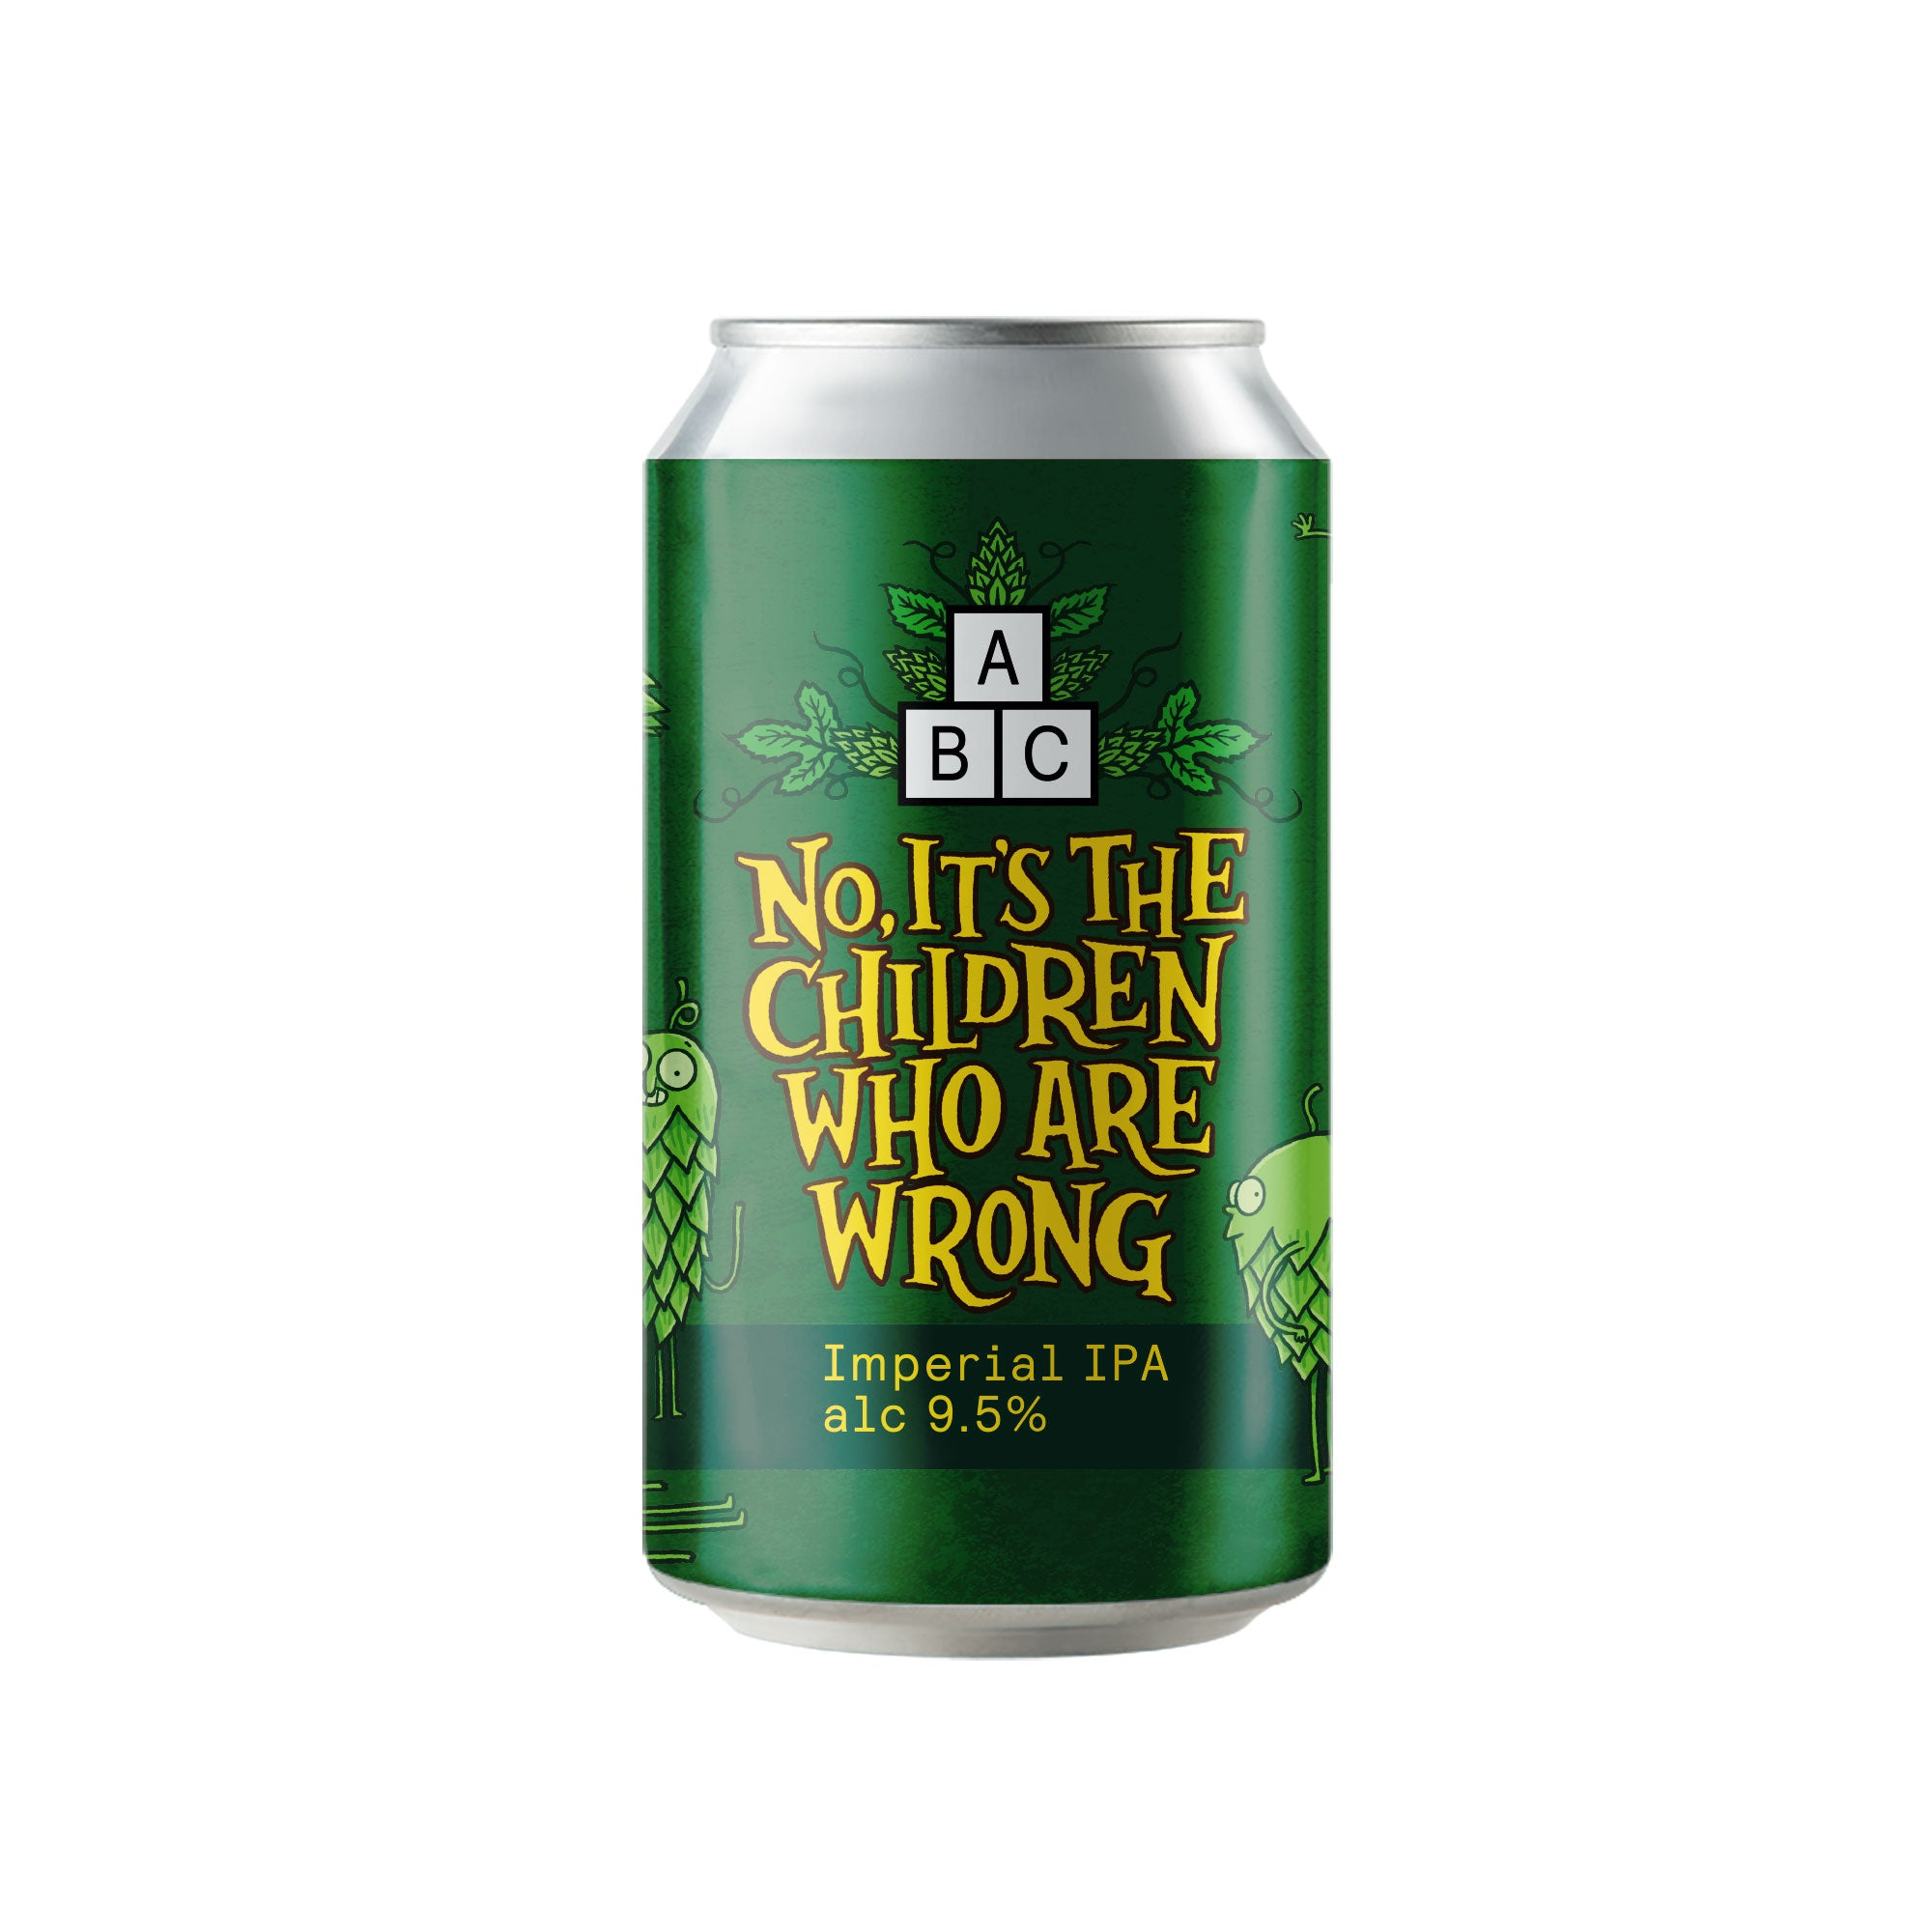 No, It's The Children Who Are Wrong - 9.5% Imperial IPA